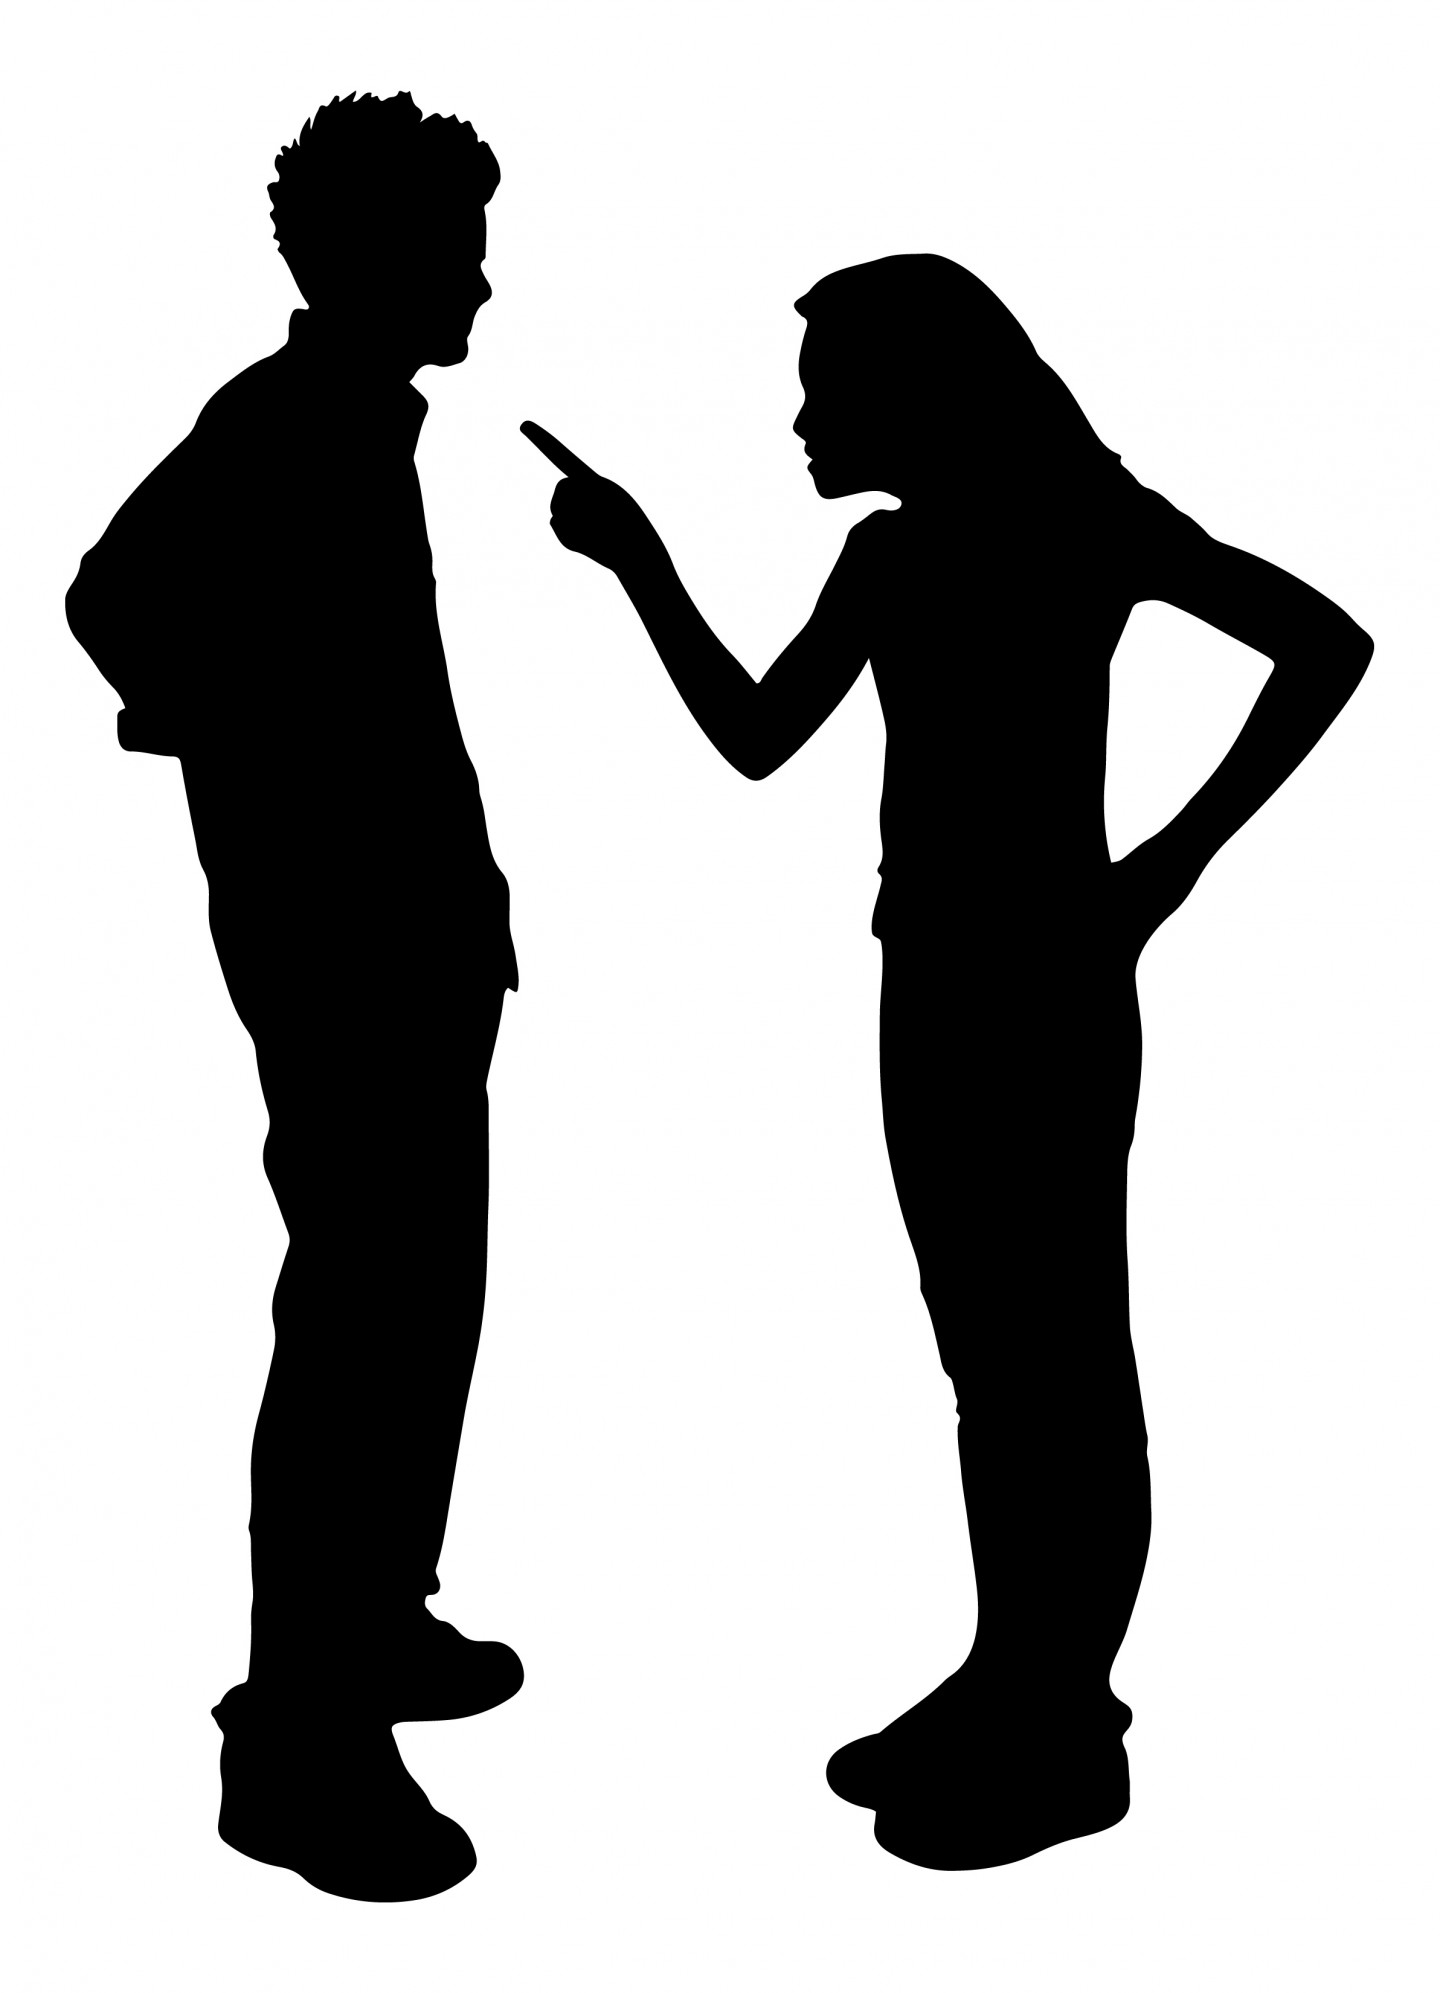 Two people arguing clipart clipart transparent download Cartoon People Arguing - Clip Art Library clipart transparent download